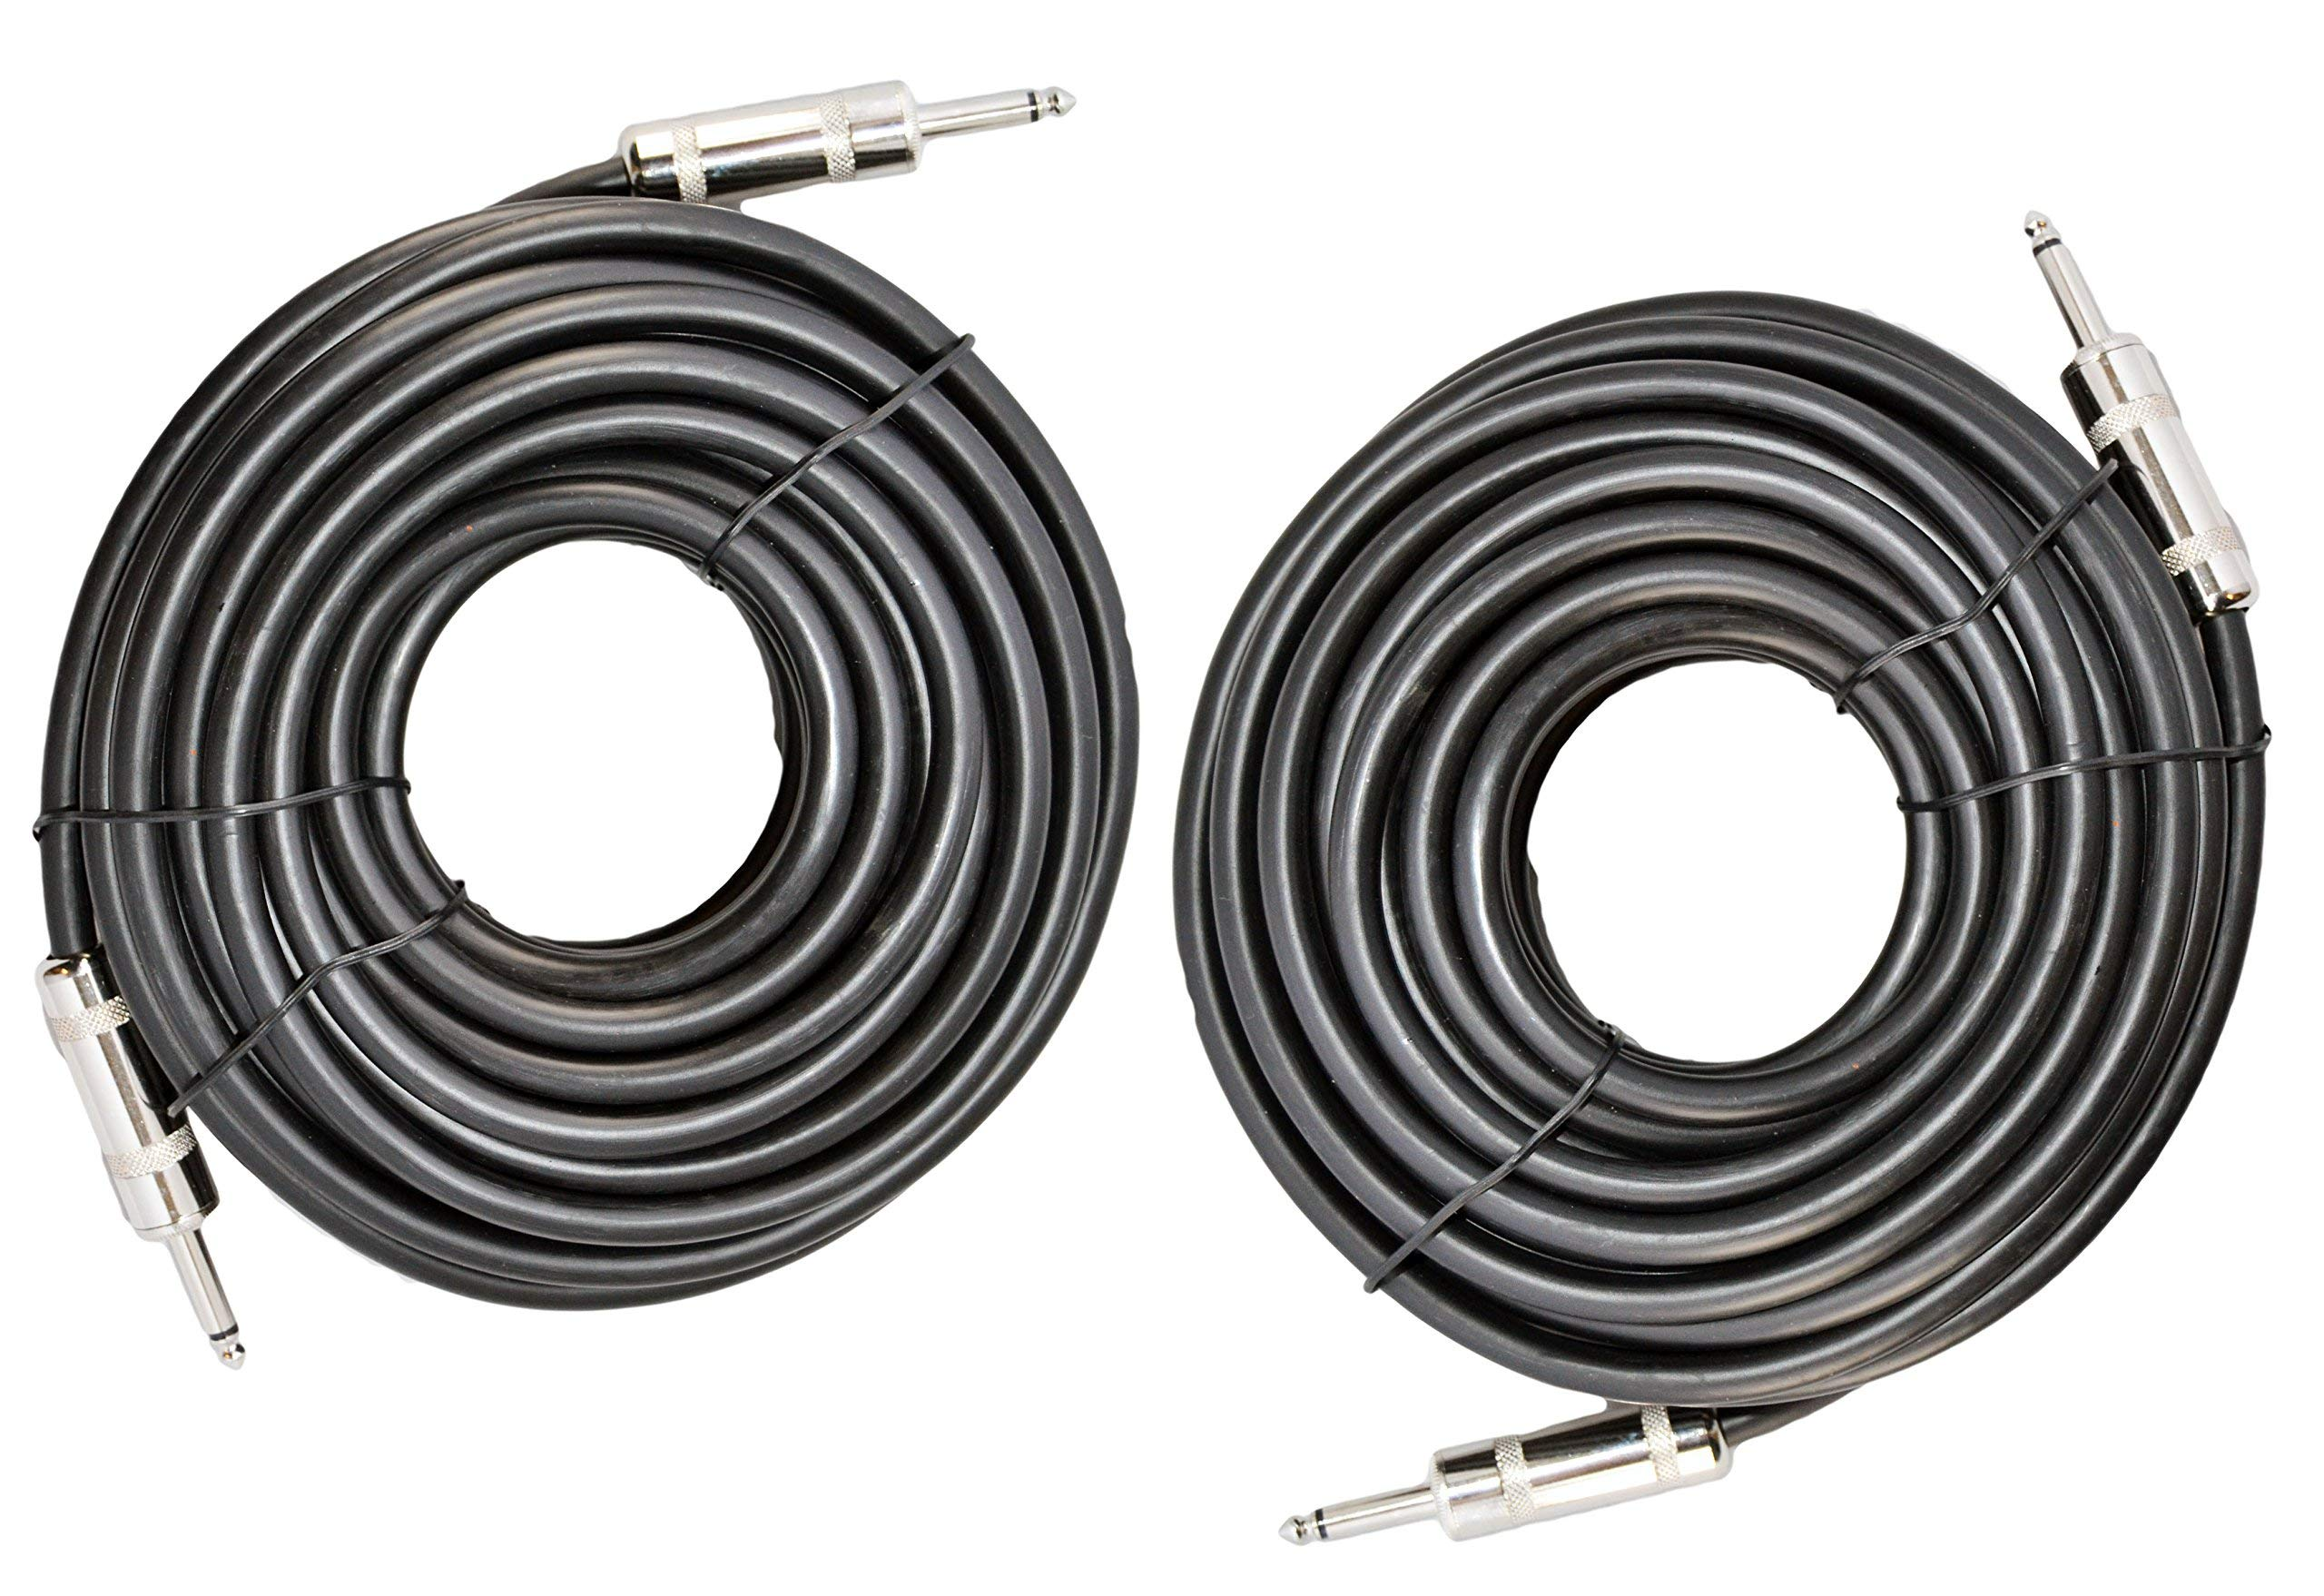 Ignite Pro 2X 1/4'' to 1/4'' 50 Ft. True 12 Gauge Wire AWG DJ/Pro Audio Speaker Cable, Pair by Ignite